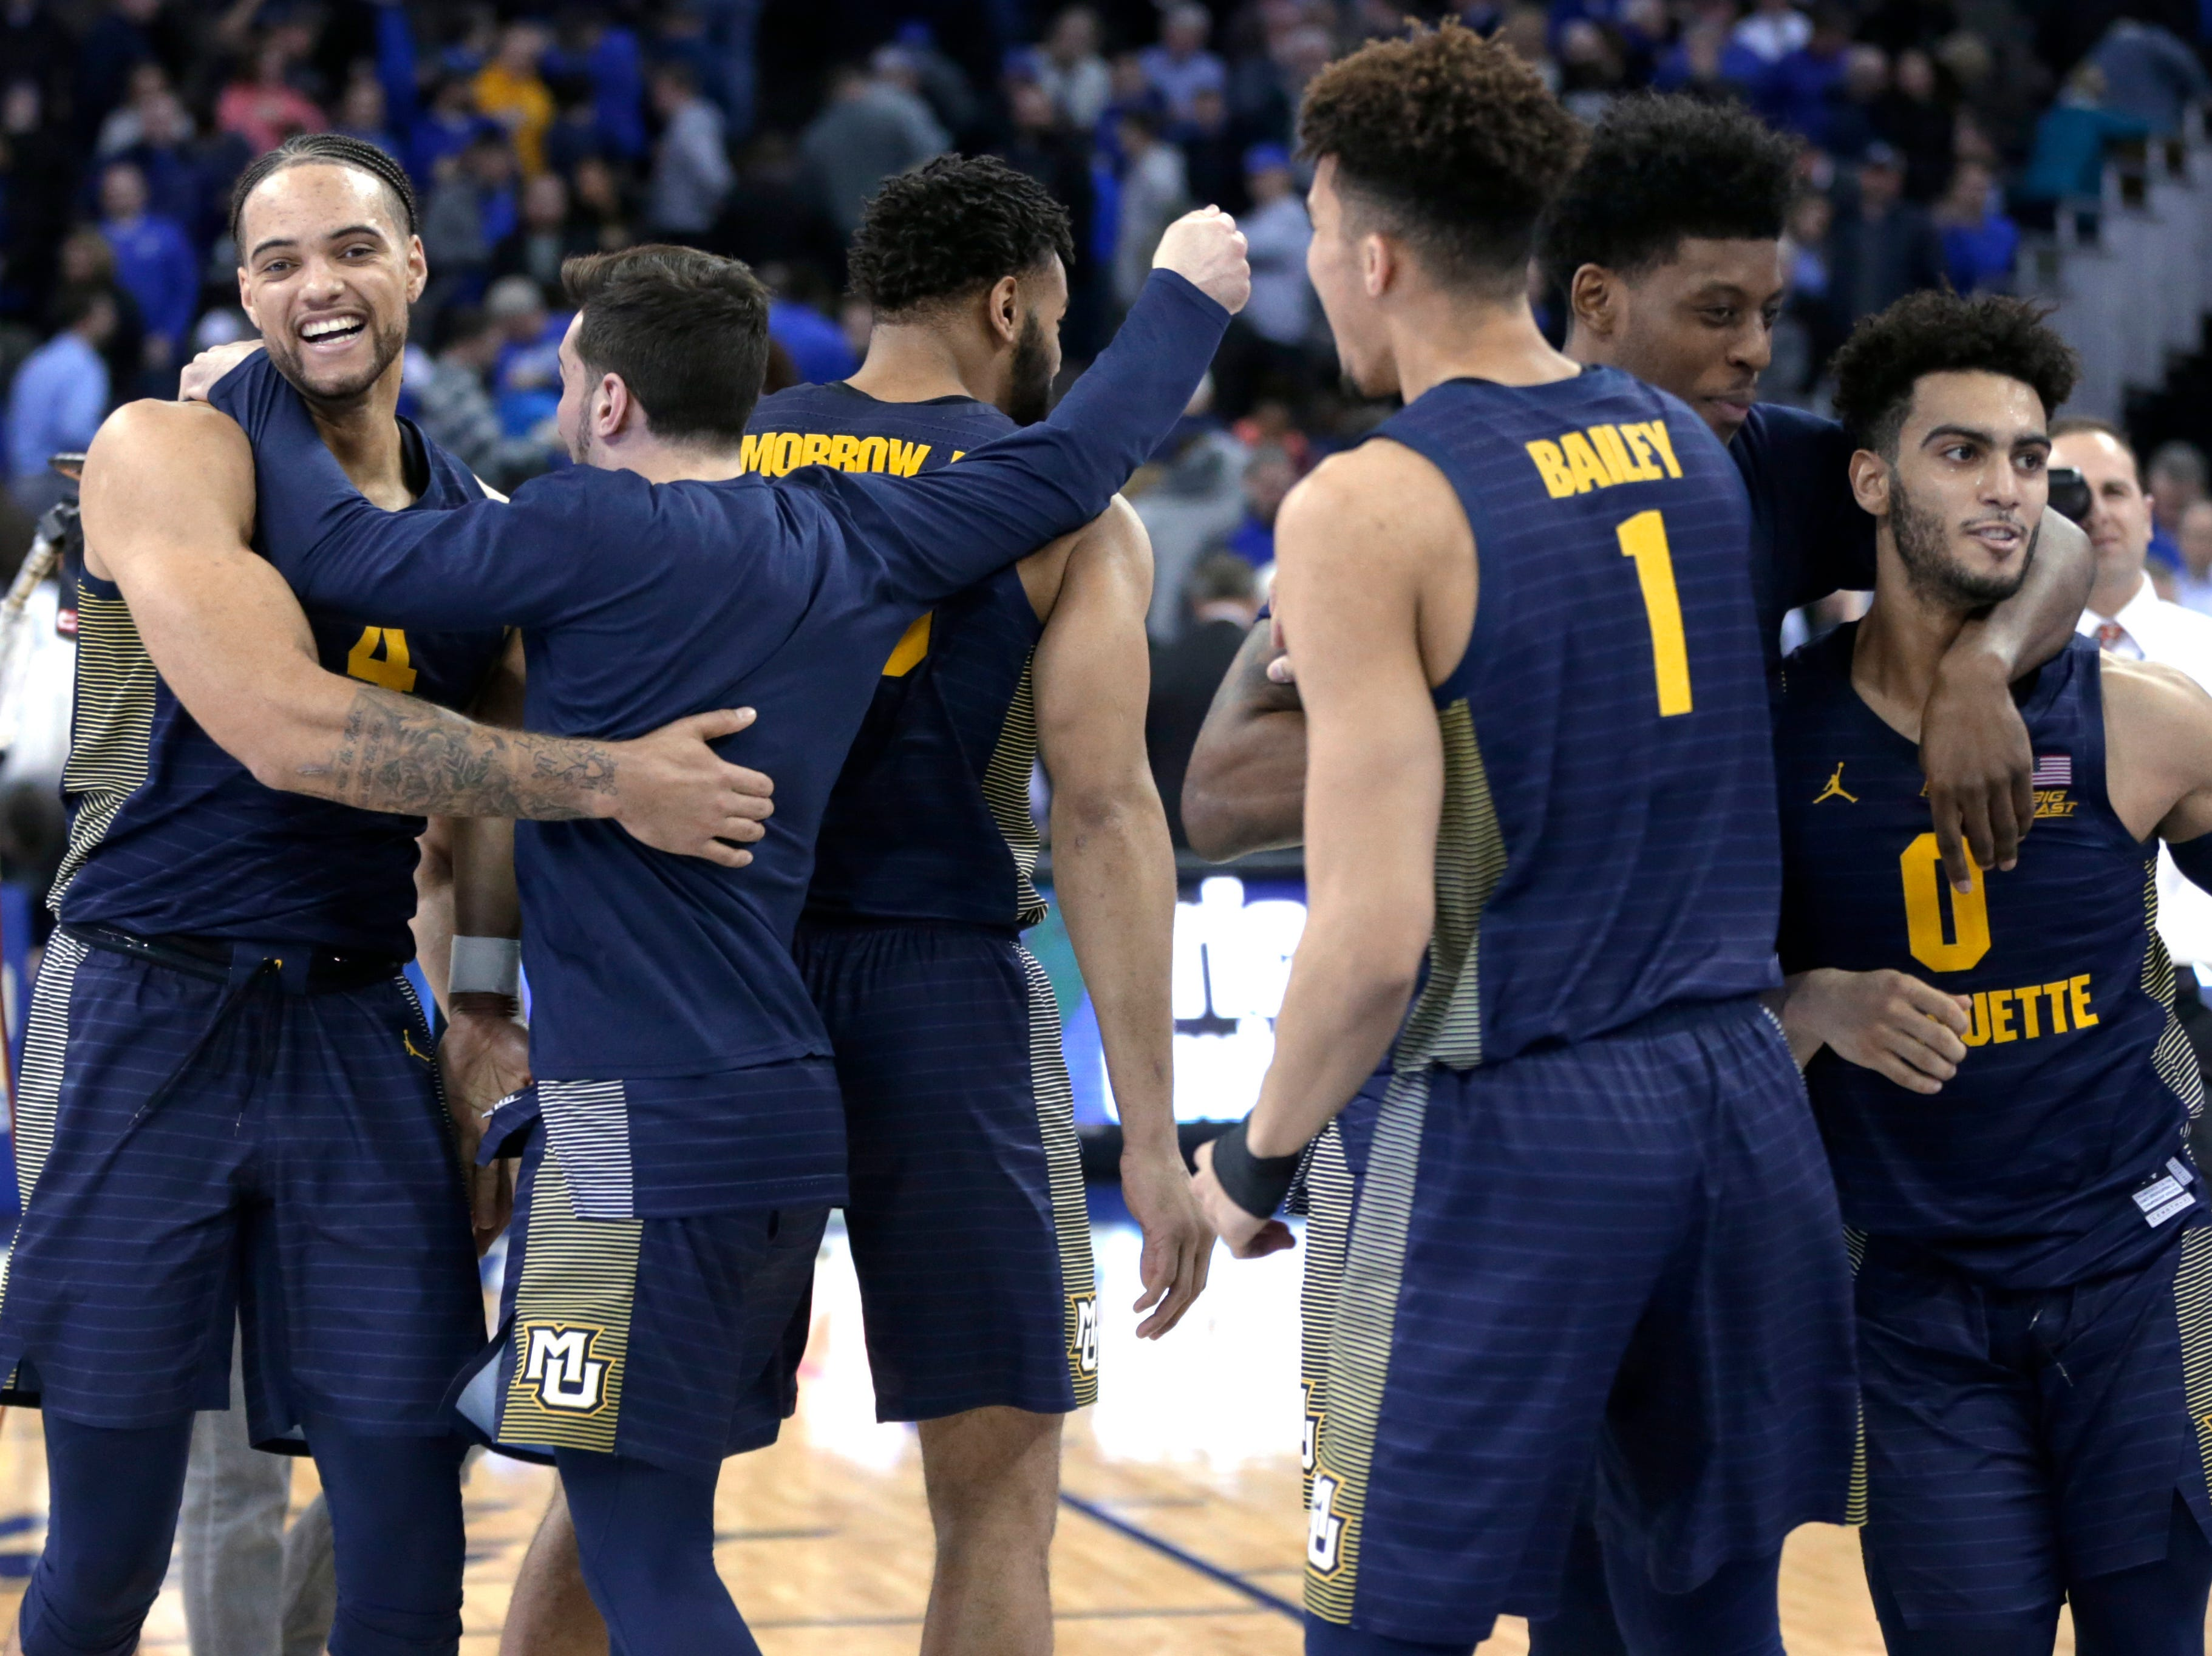 Marquette players have plenty to be happy about after picking up a thrilling overtime victory over Creighton on Wednesday night in Omaha, Nebraska.